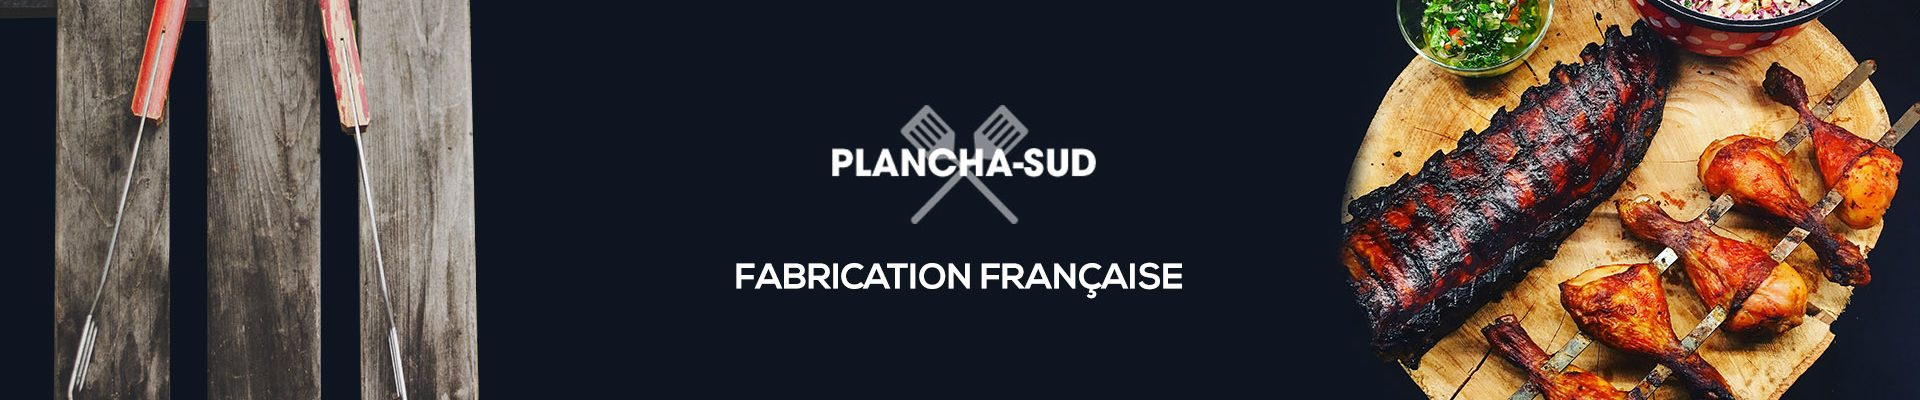 image-accueil-plancha